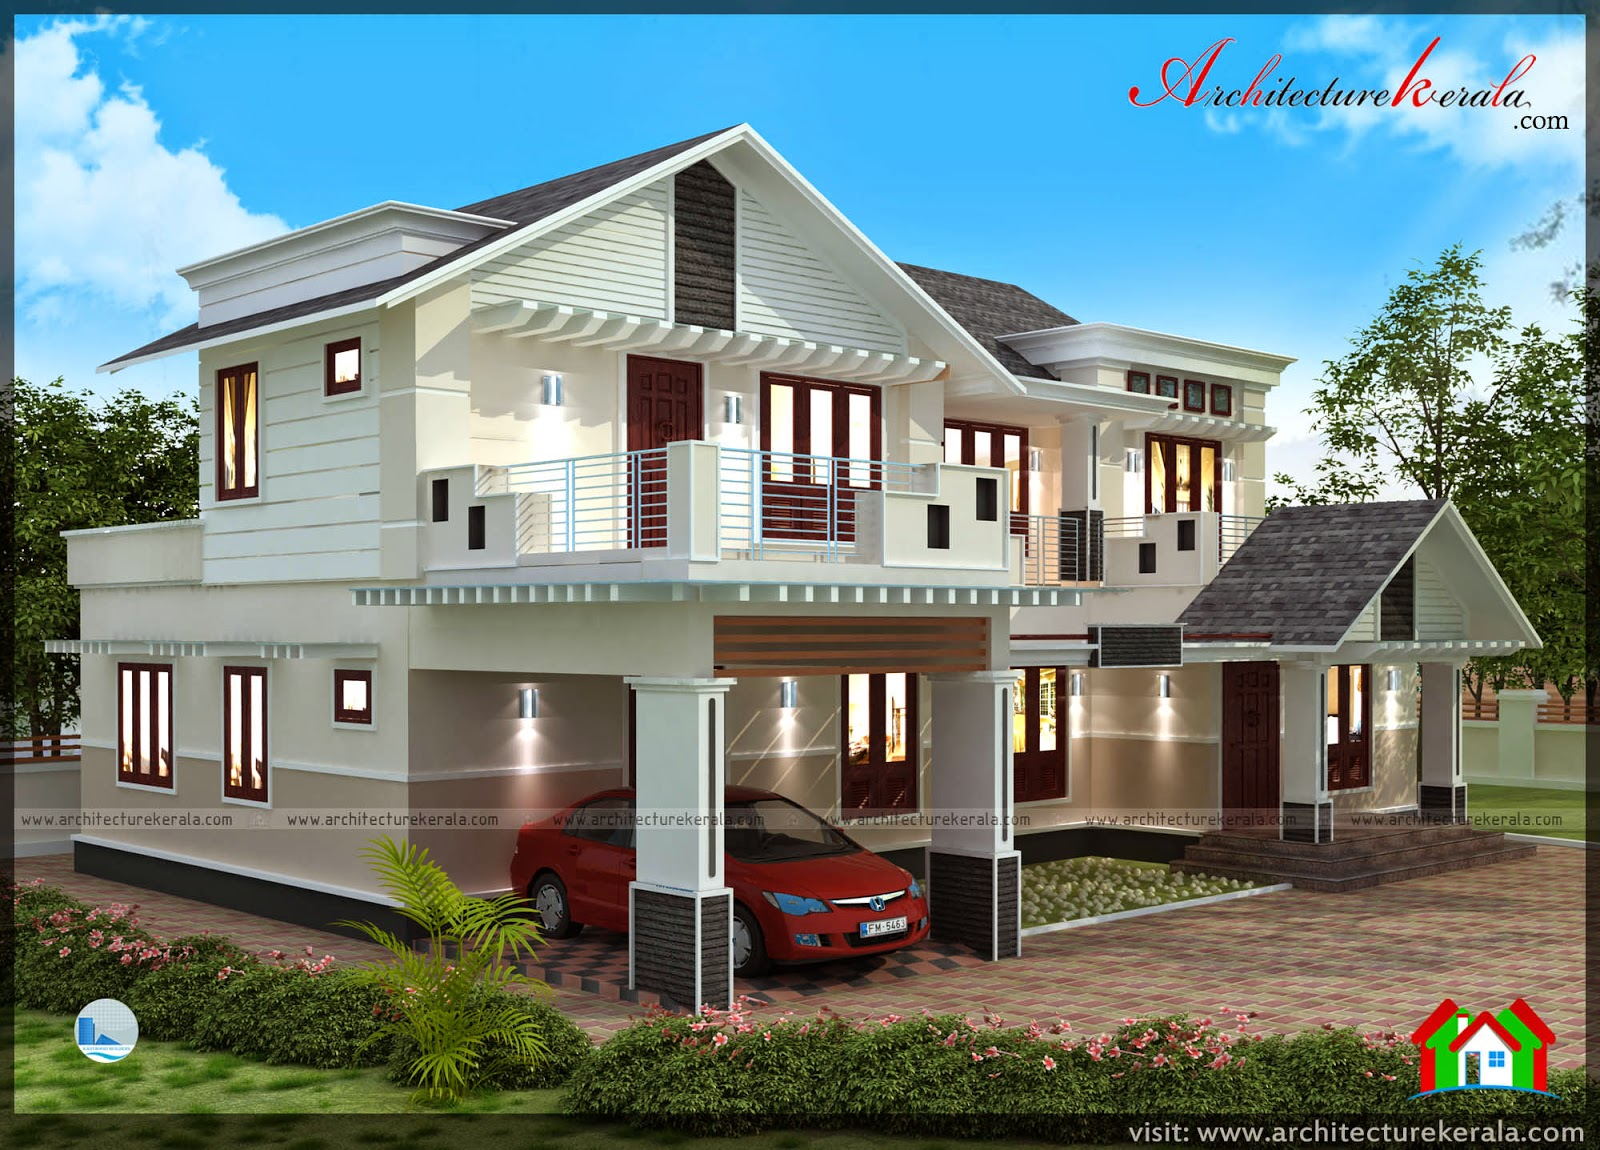 Contemporary style plan and elevation architecture kerala for Kerala type house plan and elevation